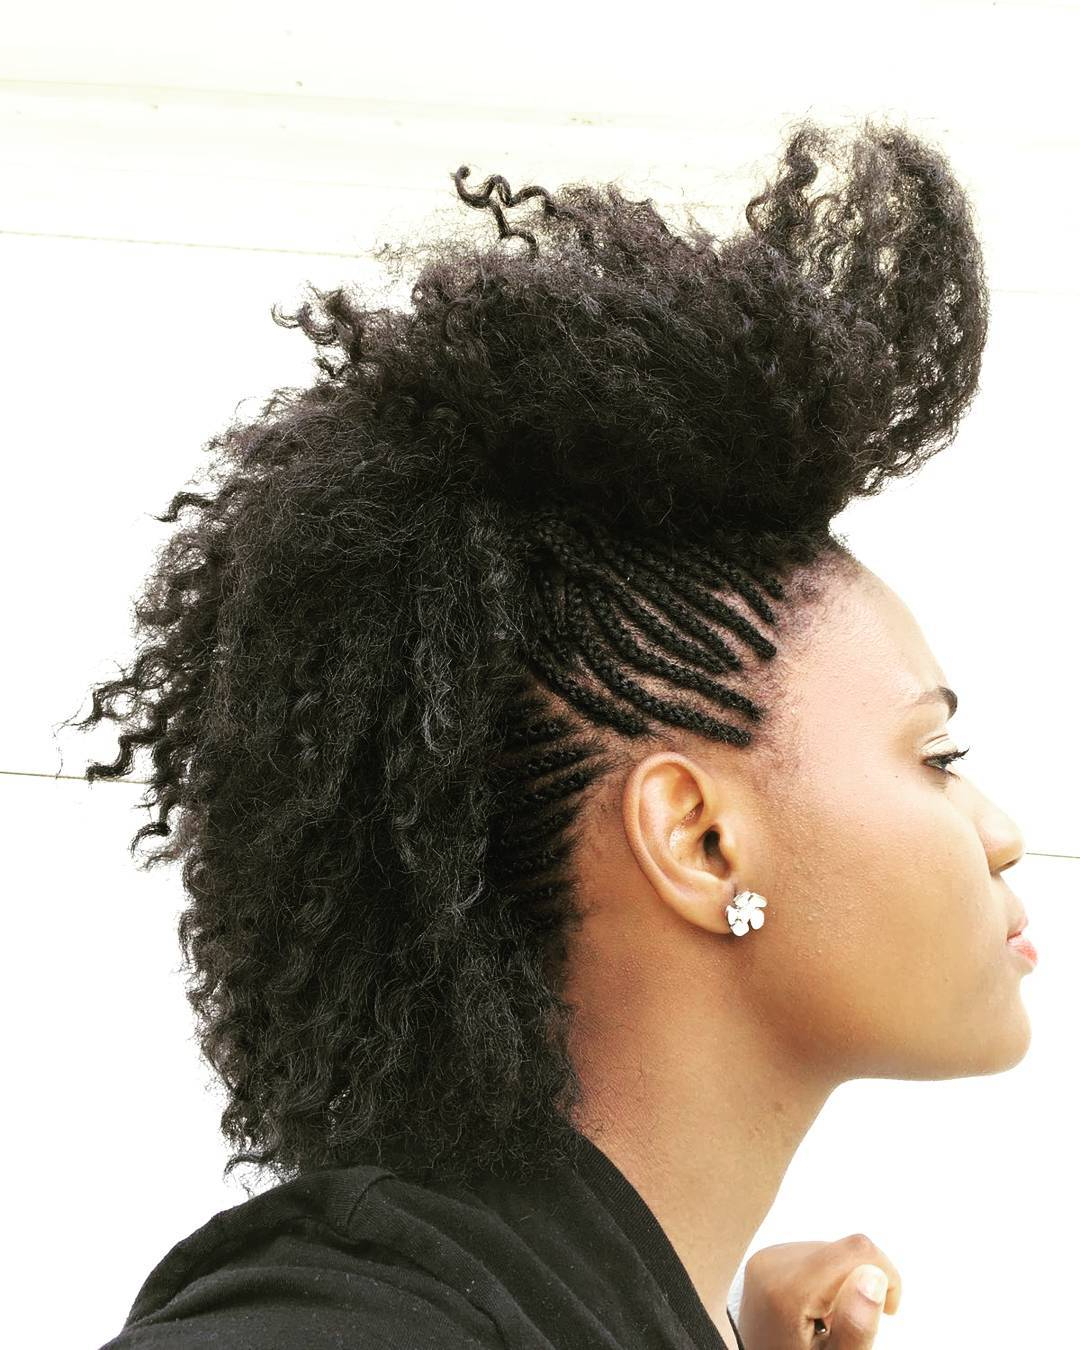 Mohawk Braids: 12 Braided Mohawk Hairstyles That Get Attention With Well Known Center Braid Mohawk Hairstyles (View 3 of 20)